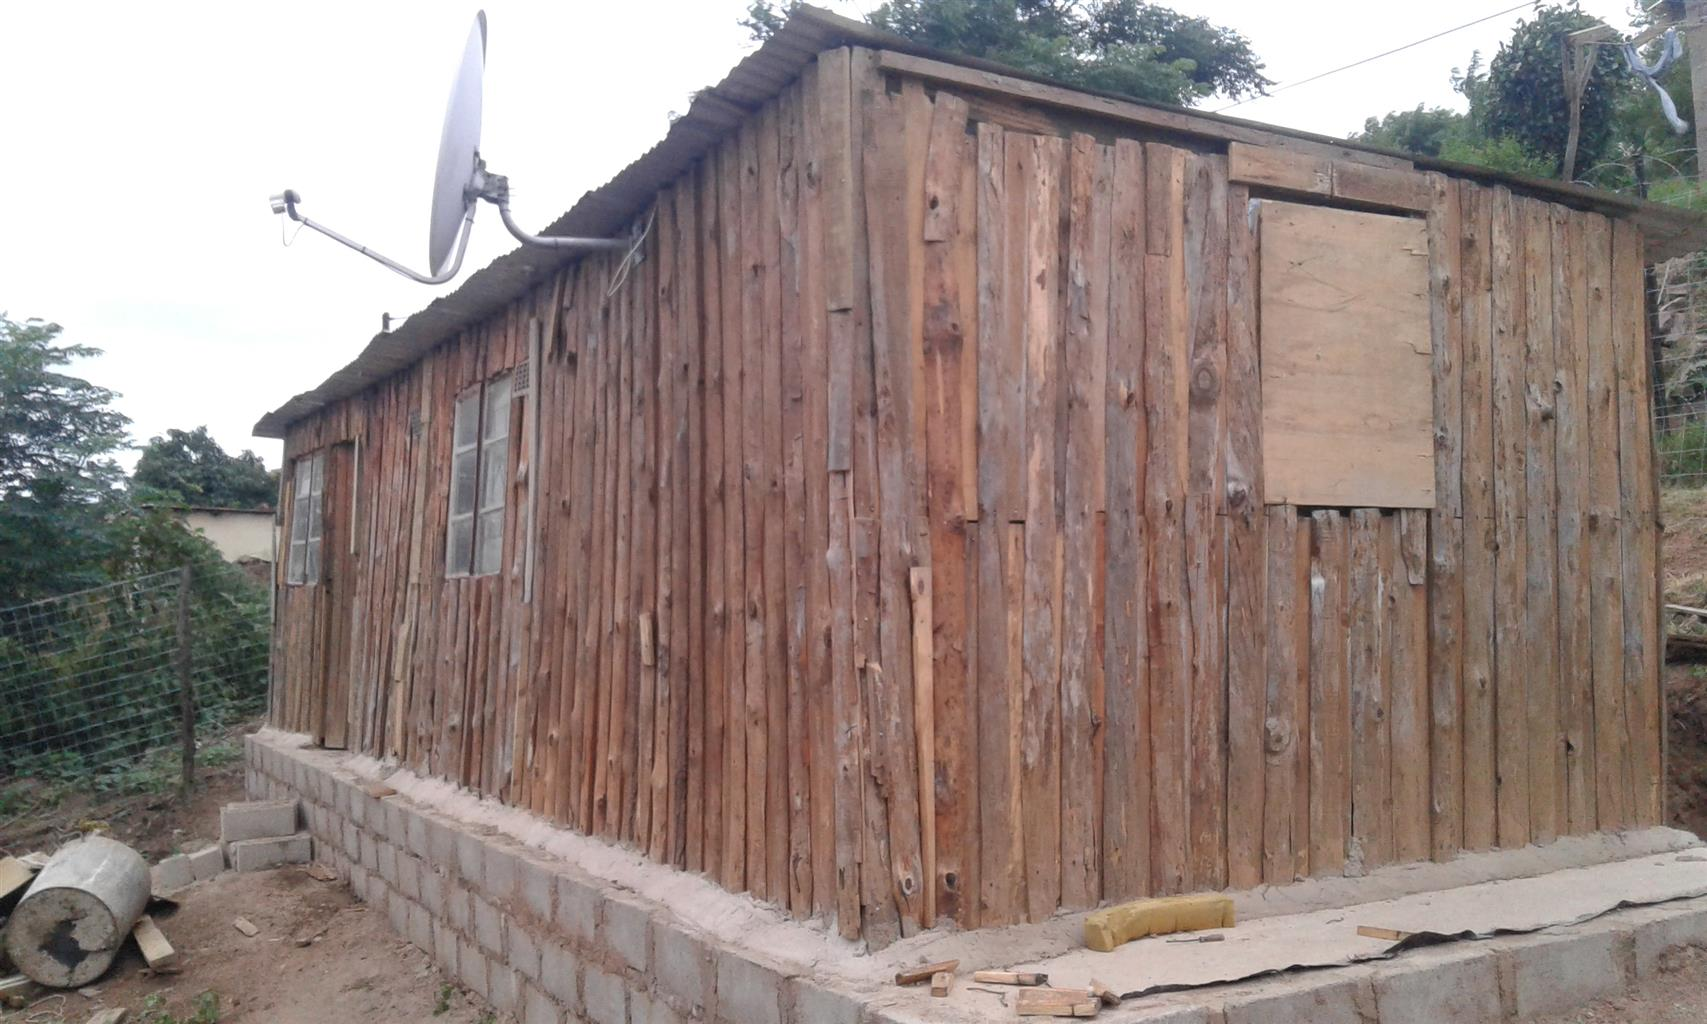 3-roomed wendy house for sale at Inanda, Amatikwe Area. Spacious house, and close to main road.